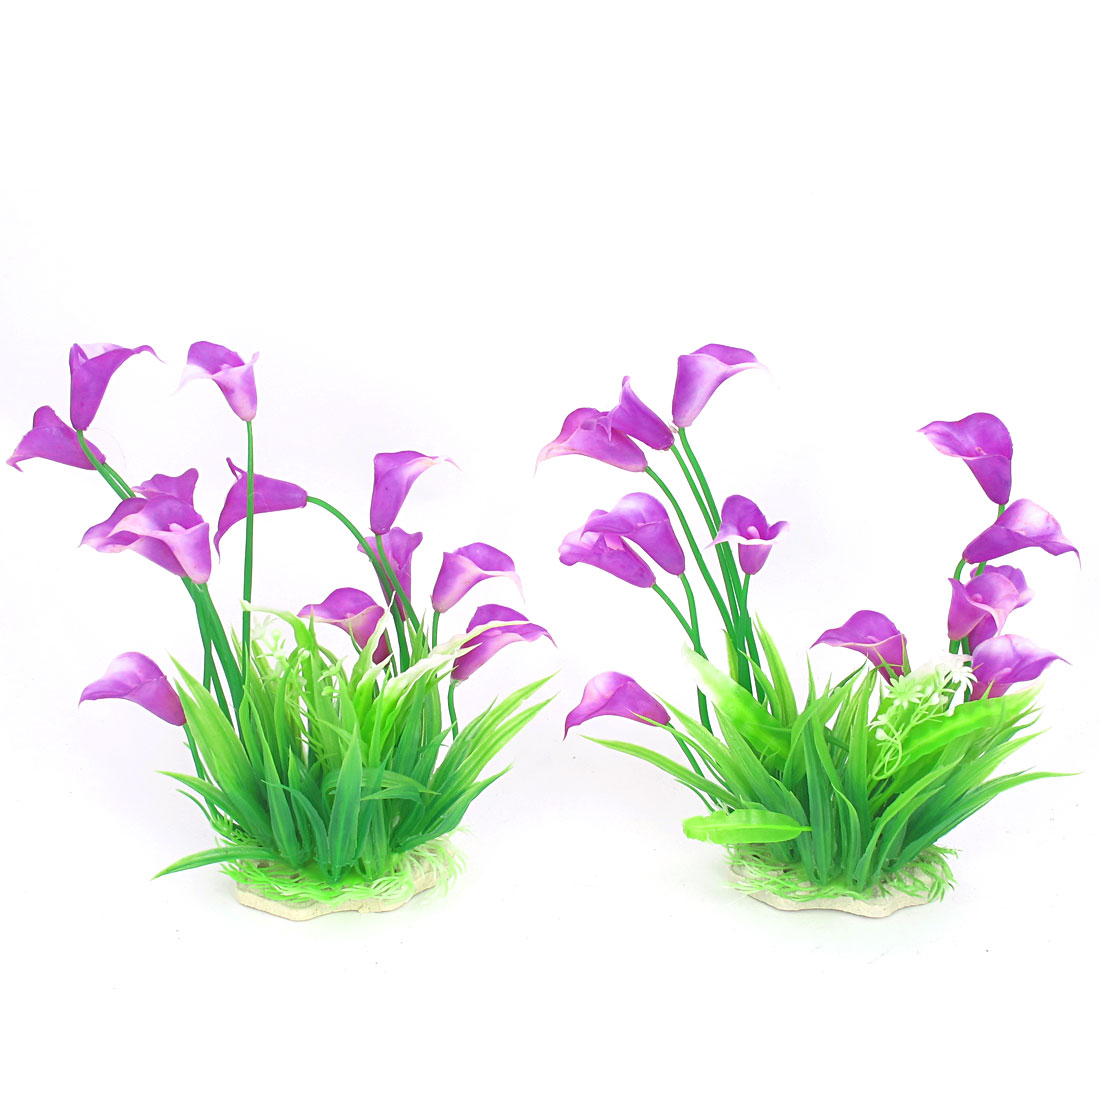 2 Pcs Green Purple Ceramic Base Plastic Artificial Decor Aquascaping Underwater Plant Flower for Aquarium Fish Tank